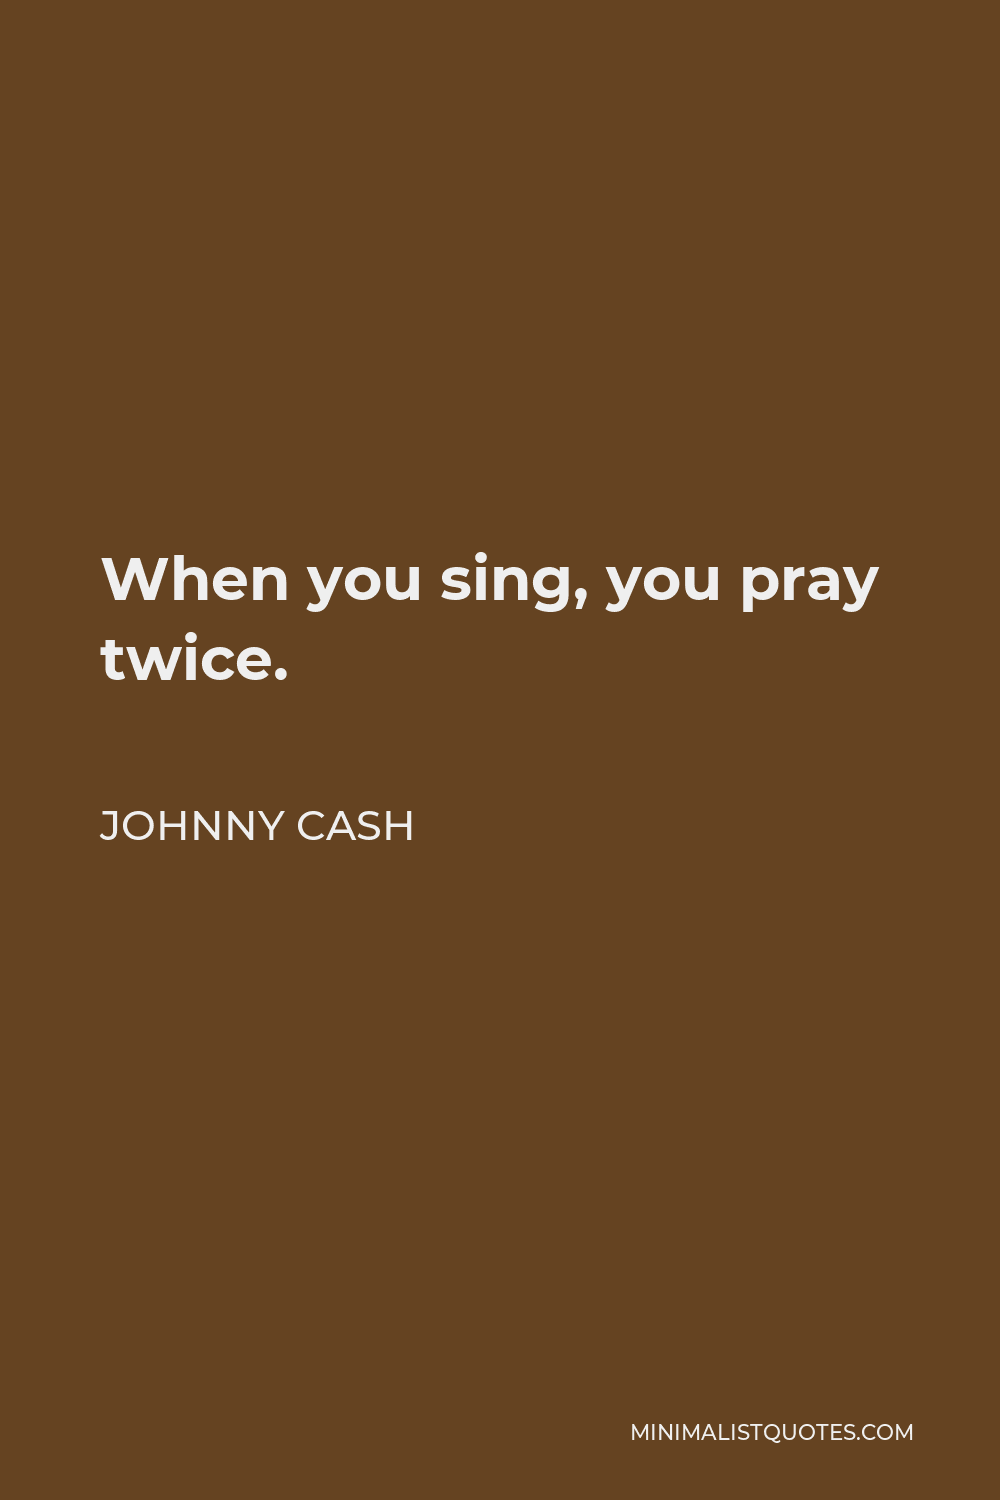 Johnny Cash Quote - When you sing, you pray twice.